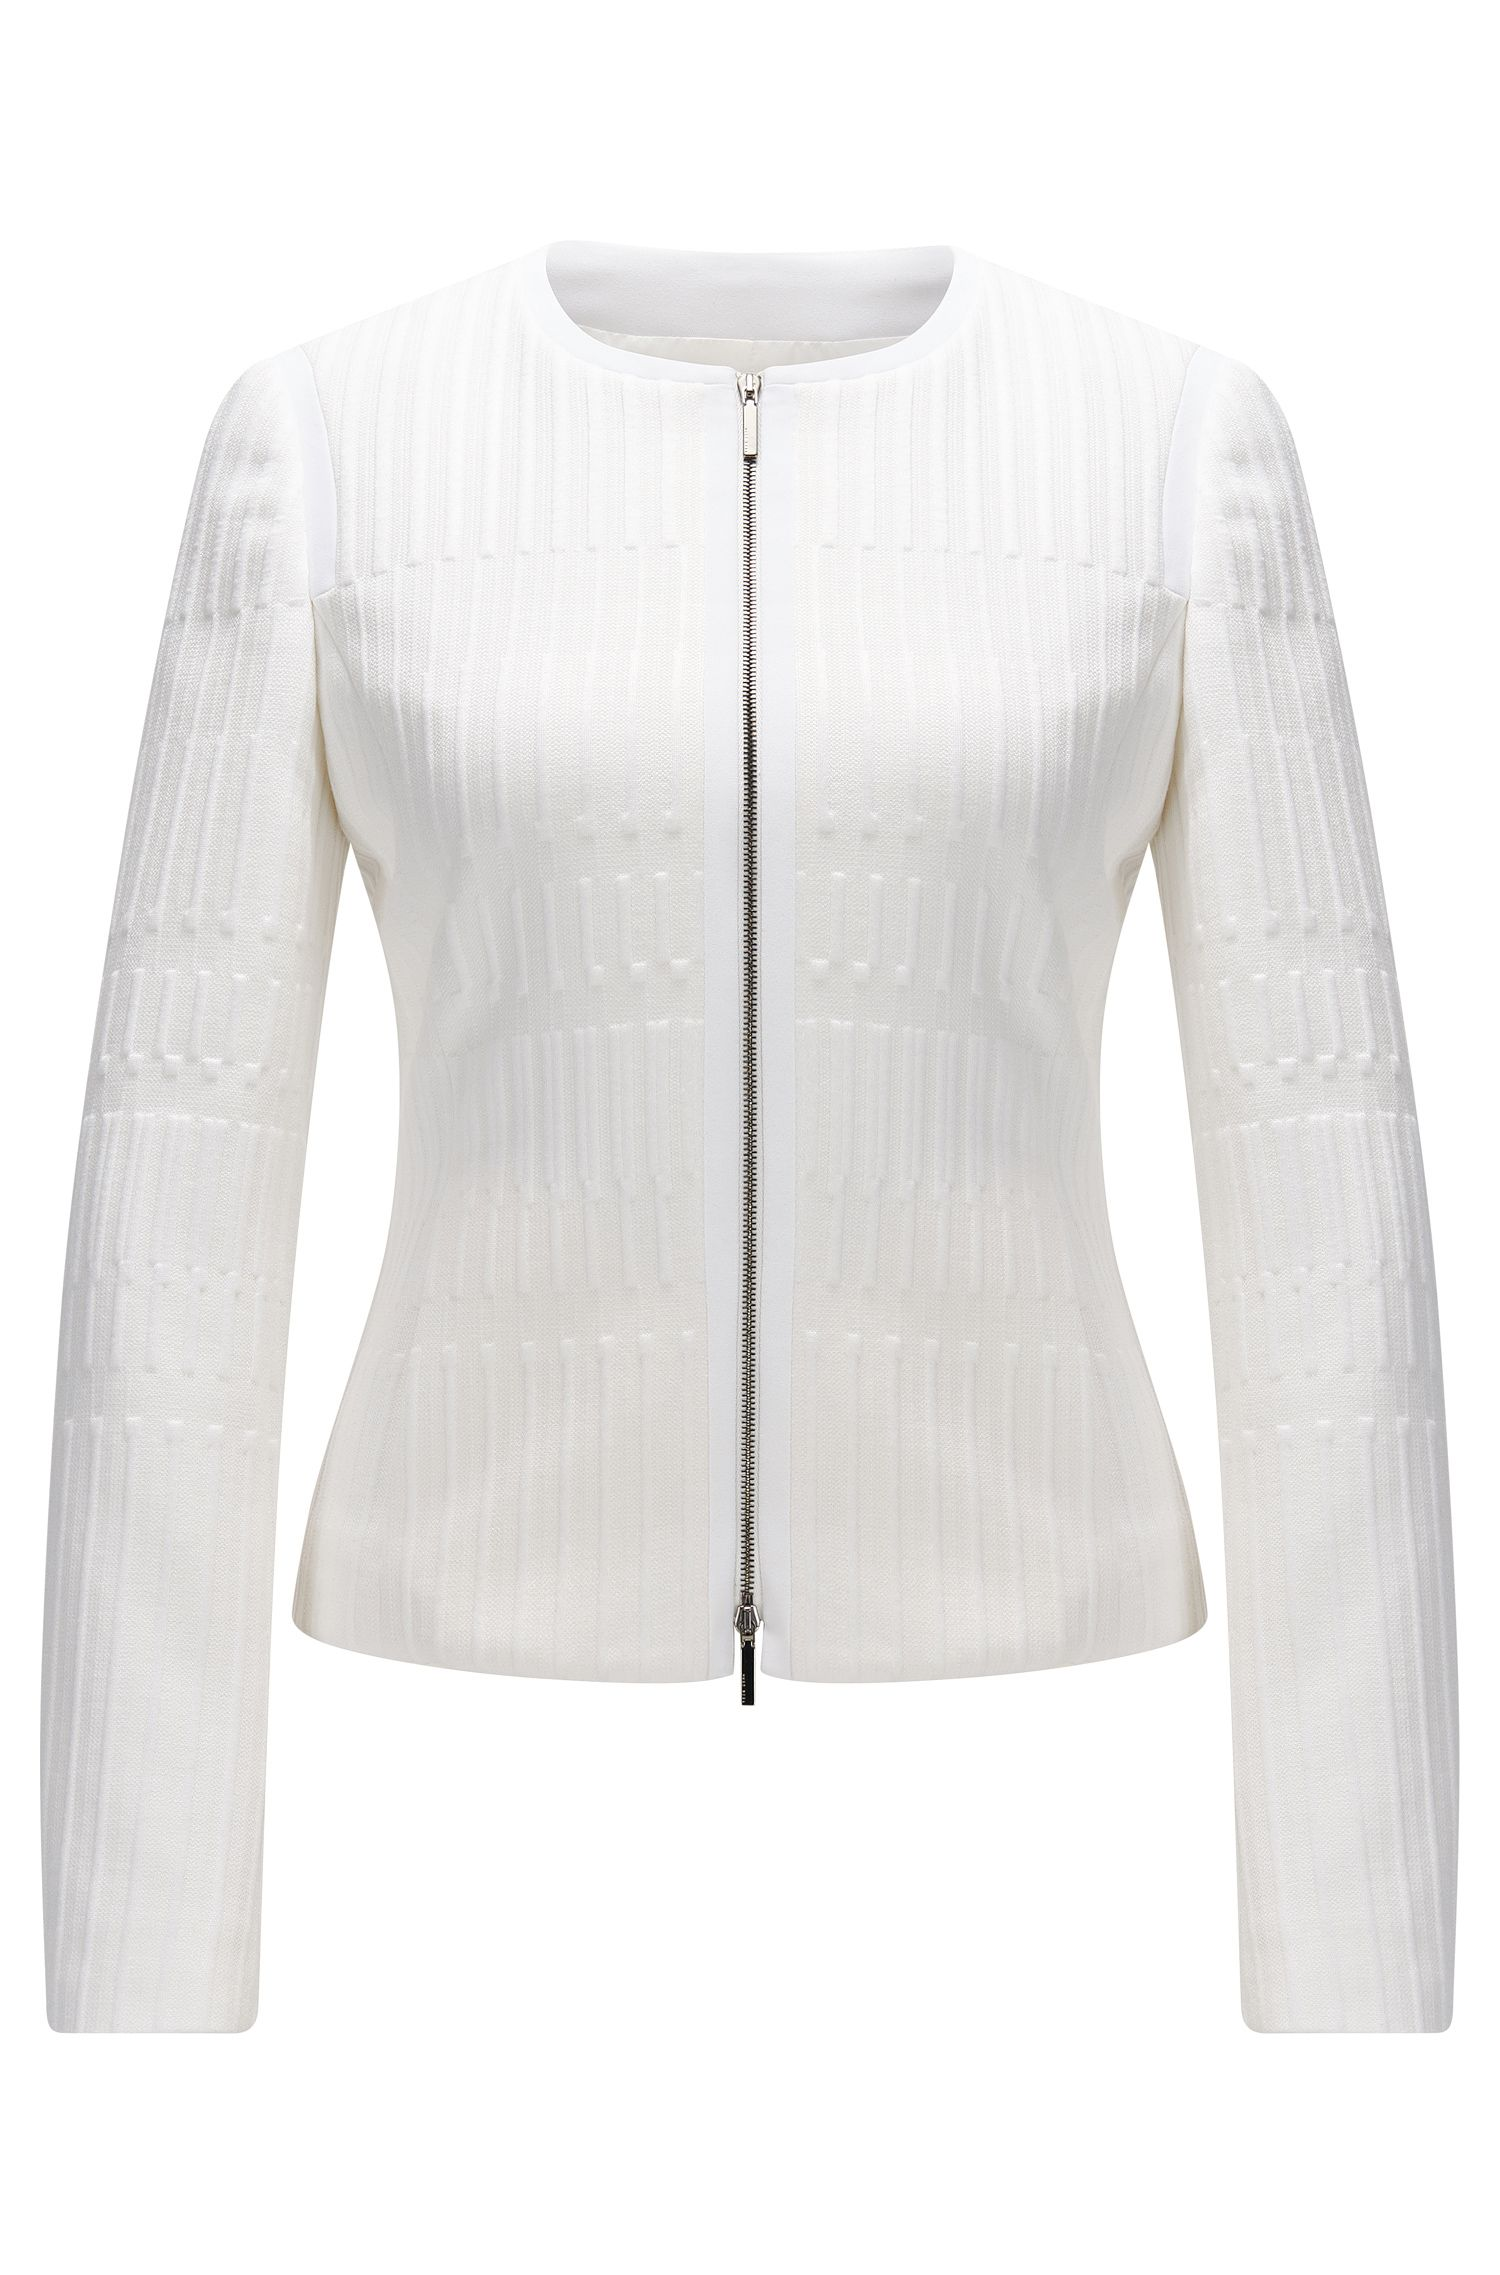 Regular-fit zip-through jacket in textured jersey jacquard